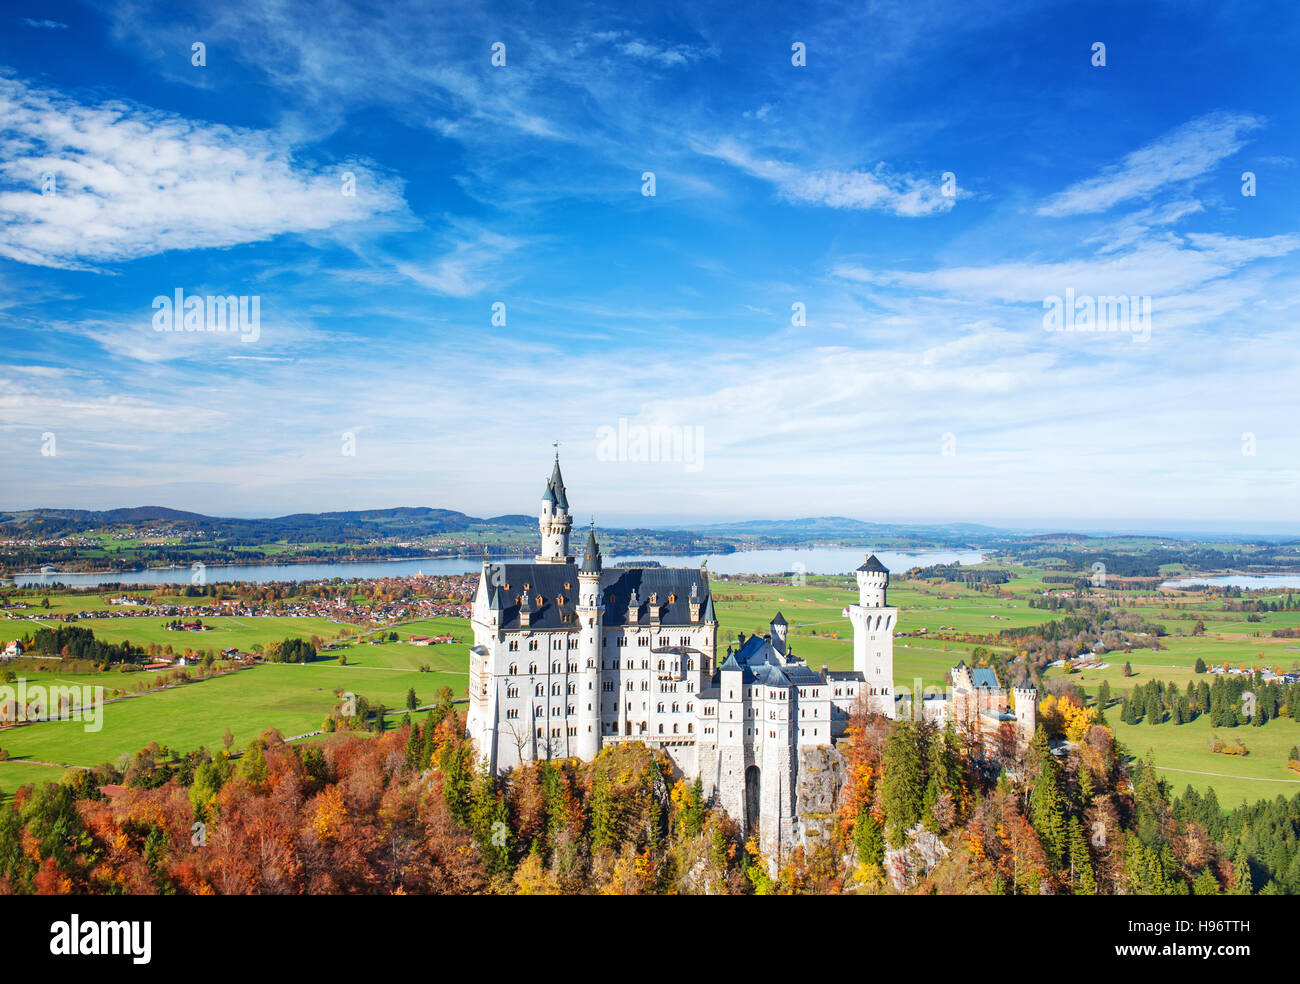 Neuschwanstein Castle in autumn. Landmark of Germany and Bavaria. Beautiful german landscape - Stock Image